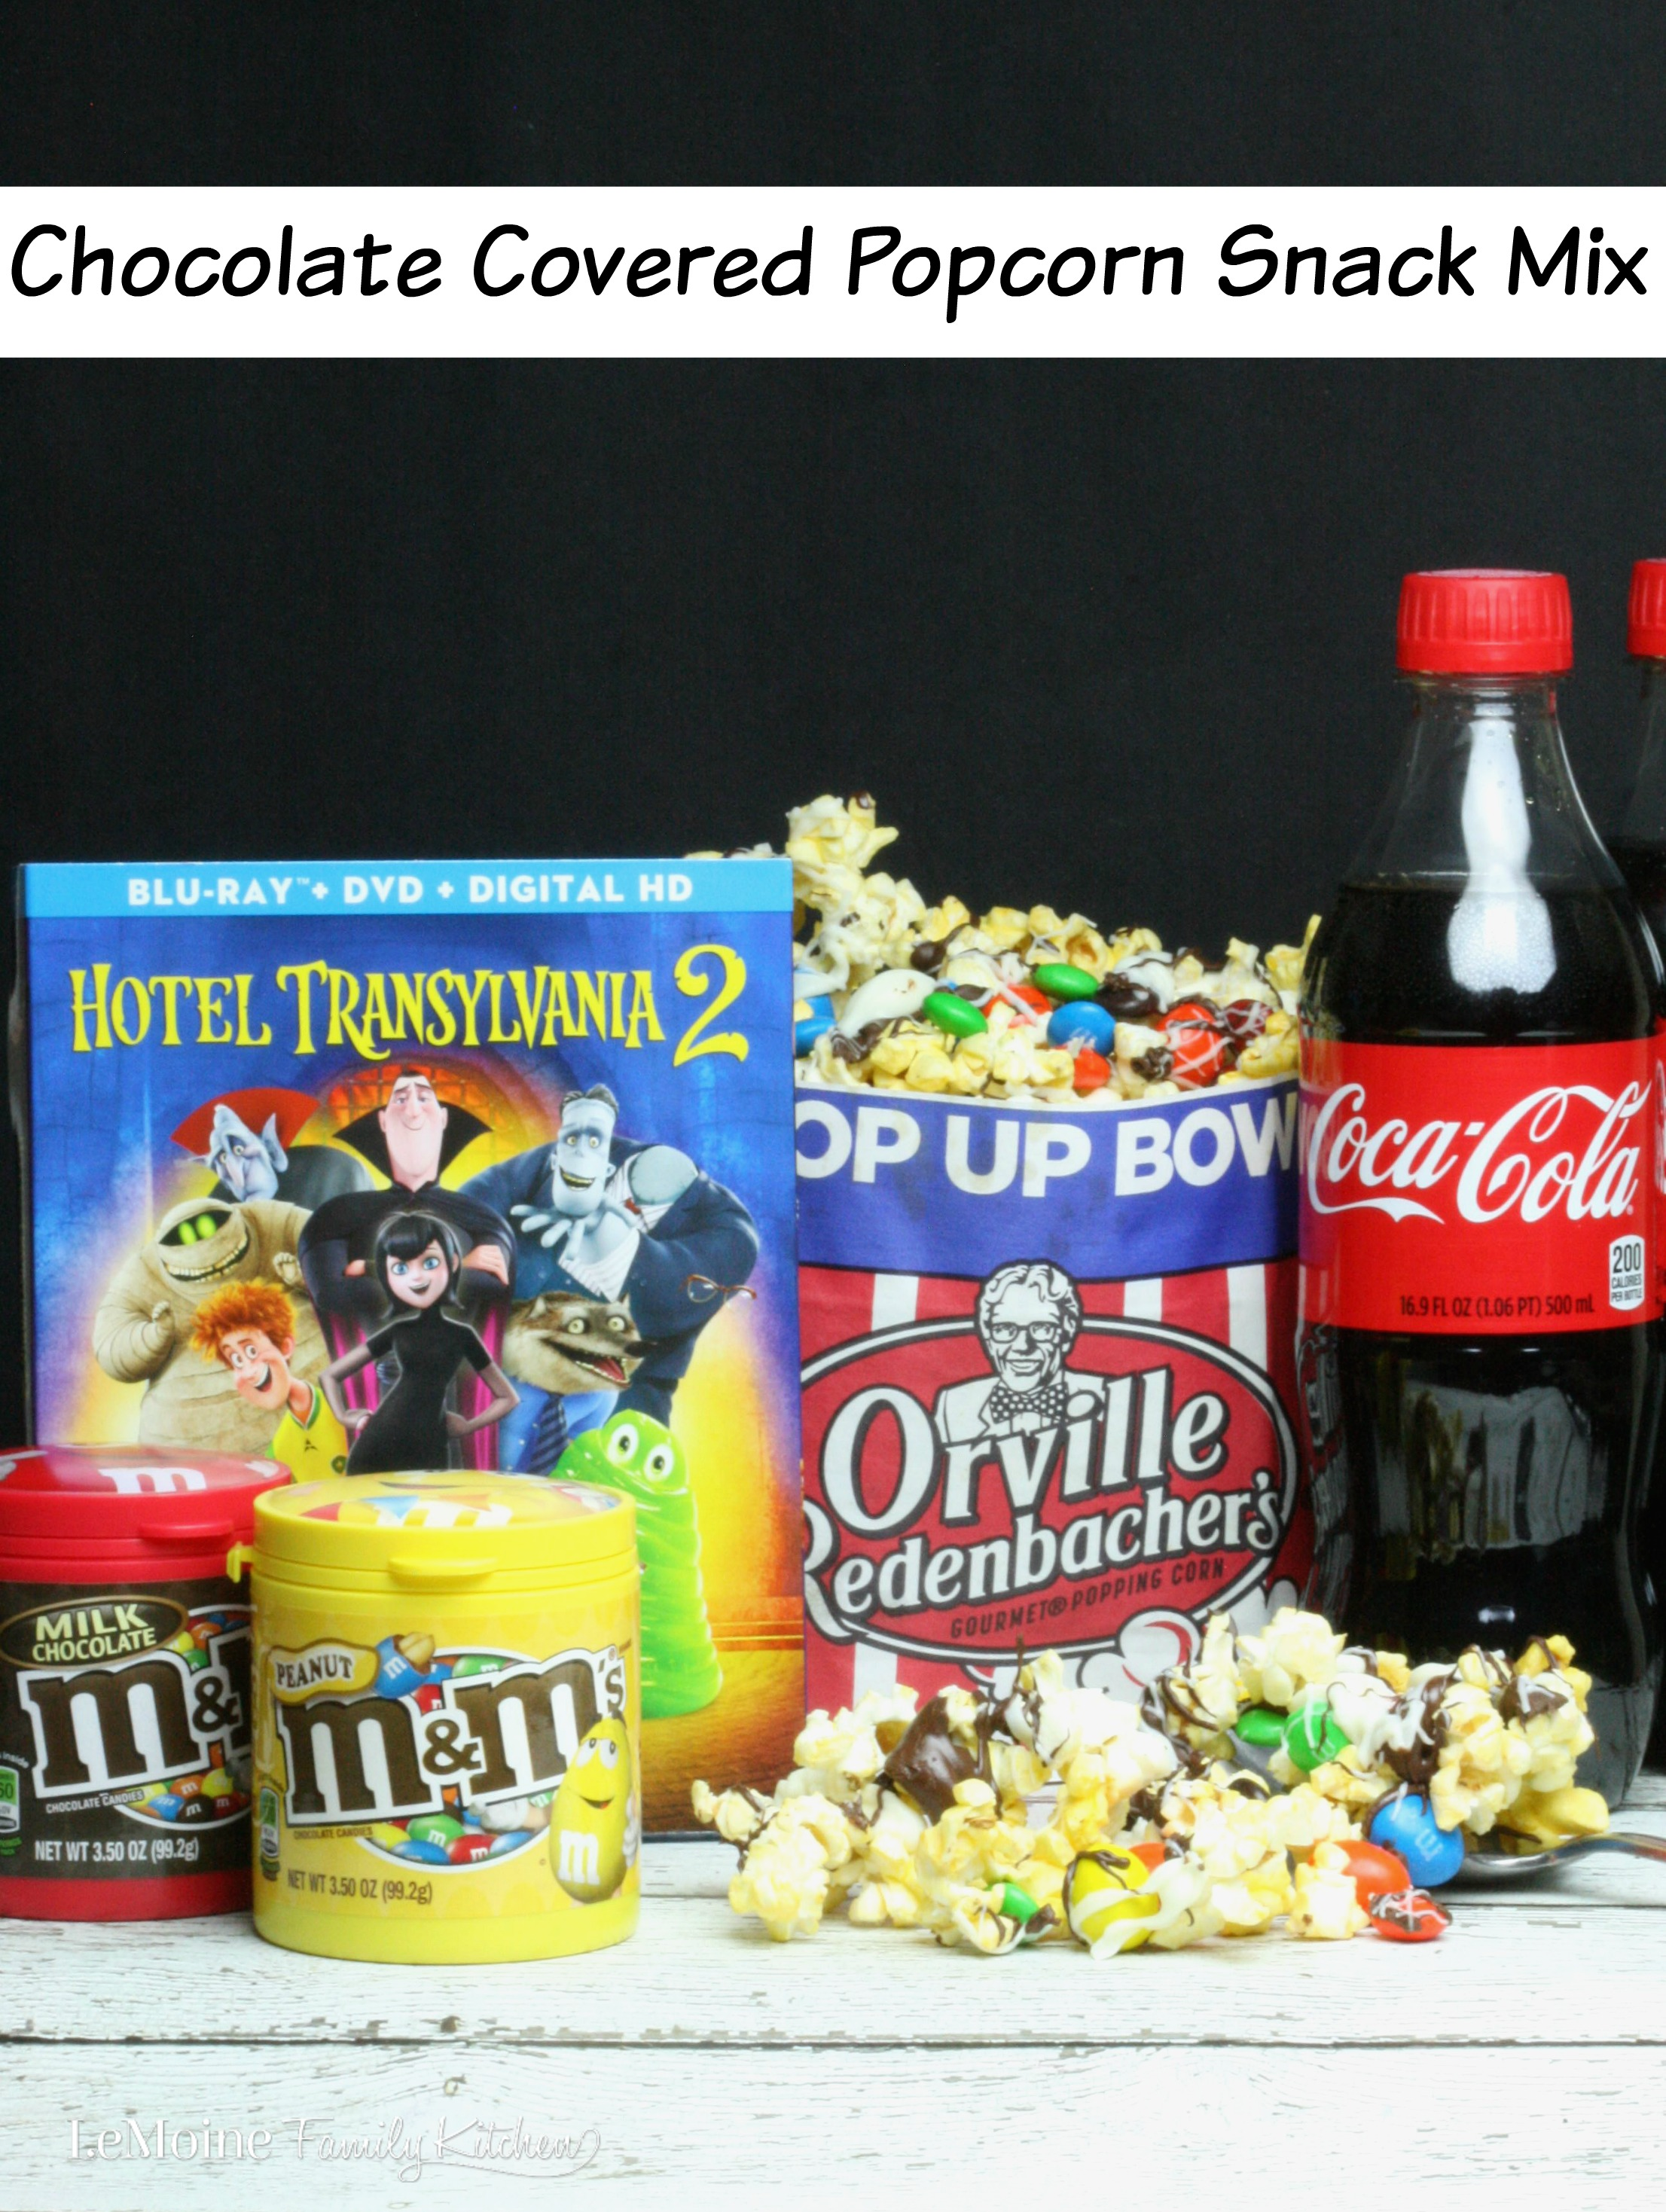 Chocolate Covered Popcorn Snack Mix